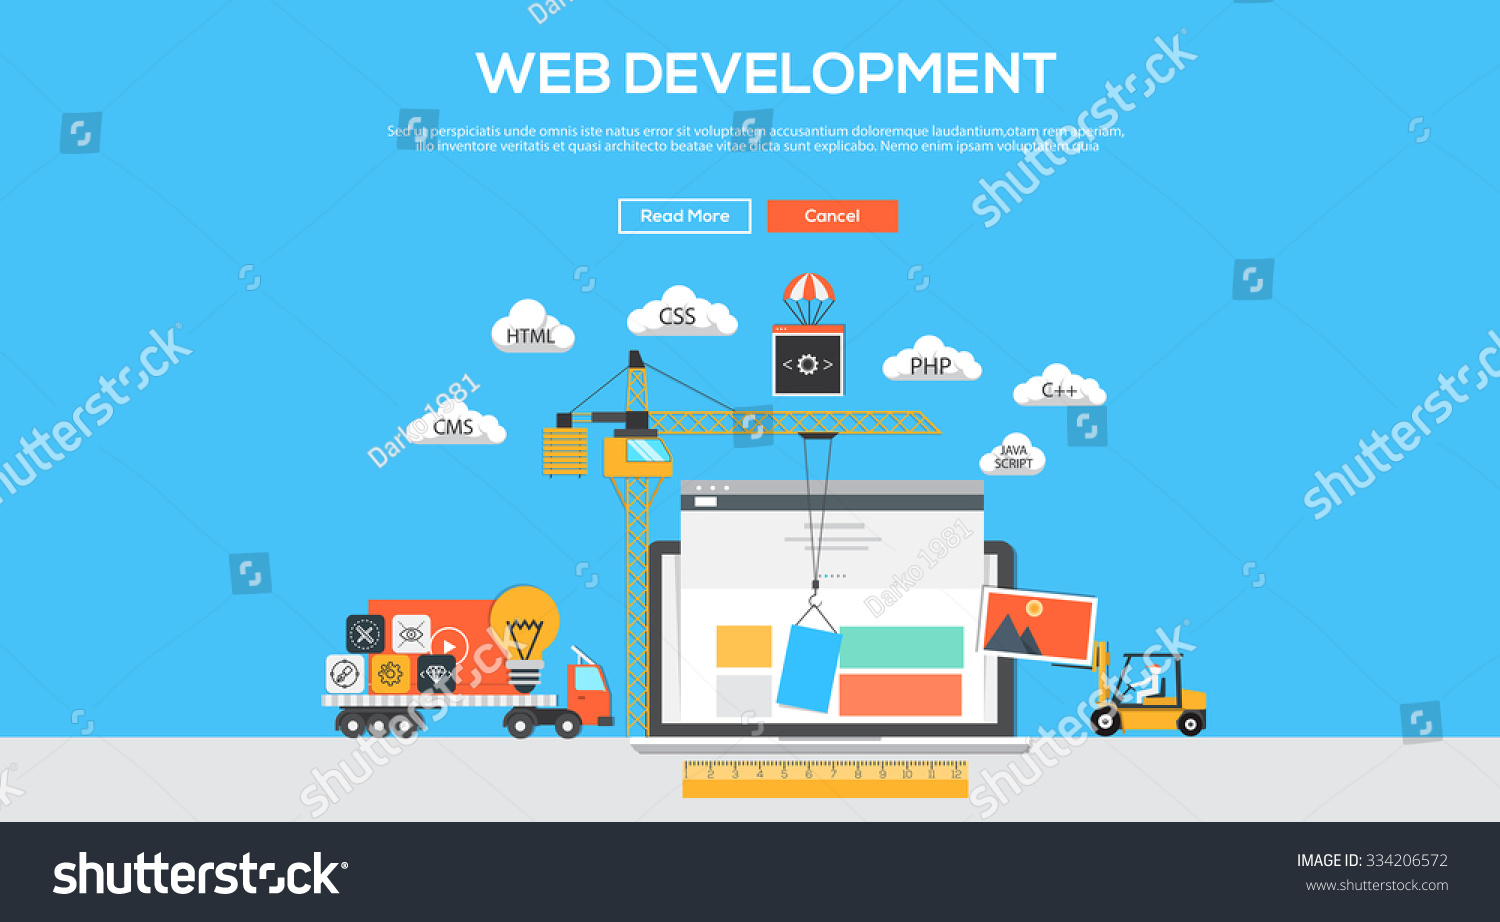 Web Design Concepts For Non-Web Designers The Chopping Block, Inc. This presentation is an HTML page. Concept Boards Keep Projects Fresh Explore Lessen the content, increase the exploration. Pick 4 to 6 relative sample elements.